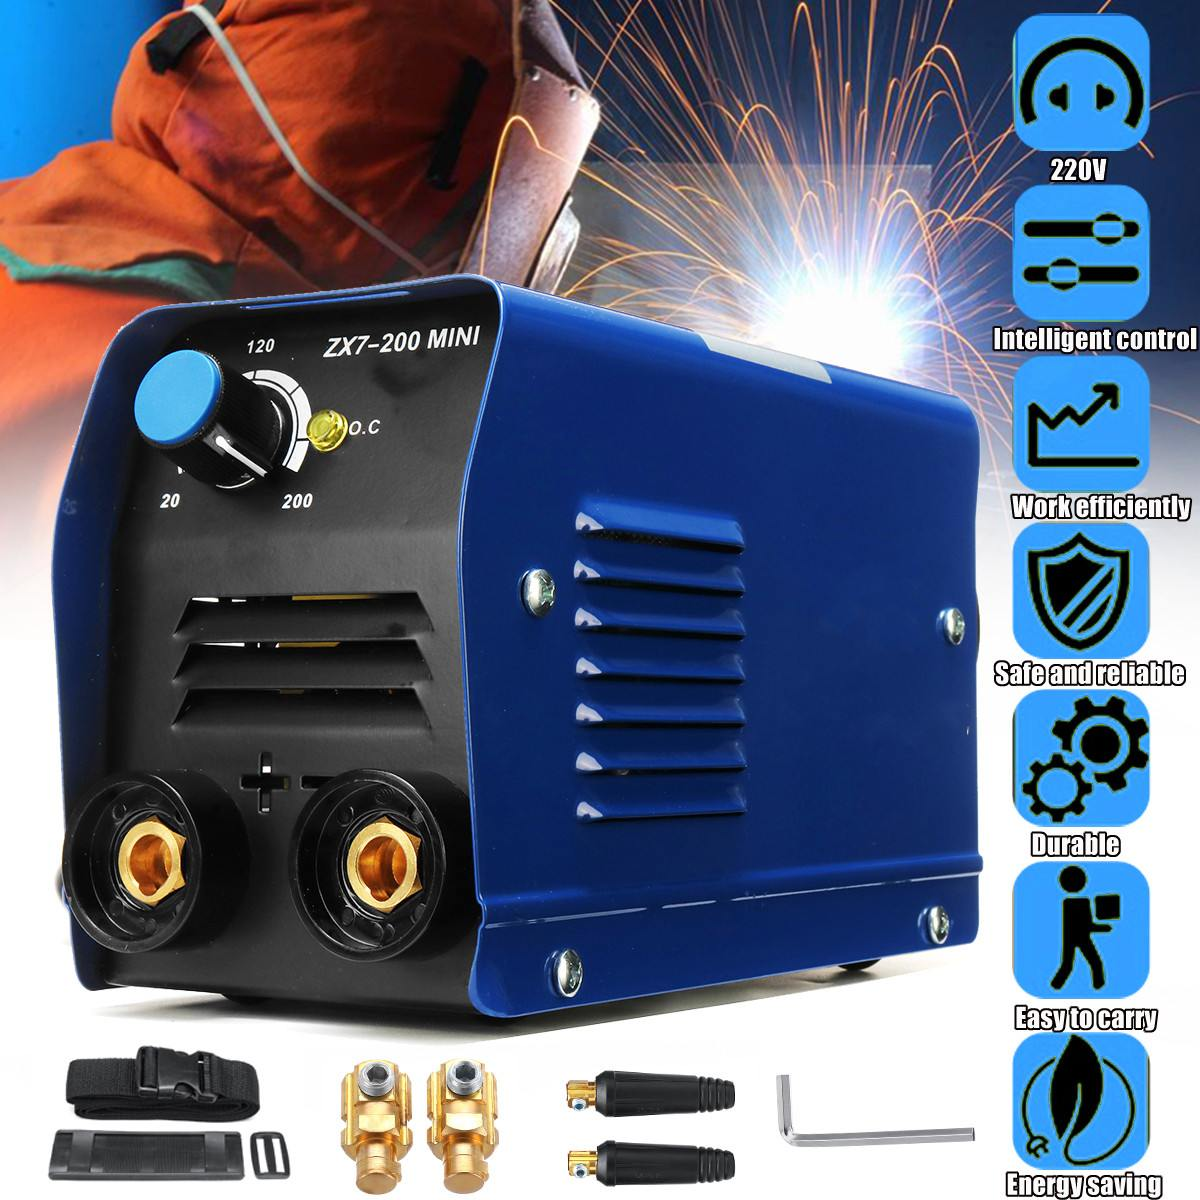 220V Mini Electric Welding Machine Portable Solder 20-200A Inverter Soldering Tool <font><b>ARC</b></font> Welding Working image